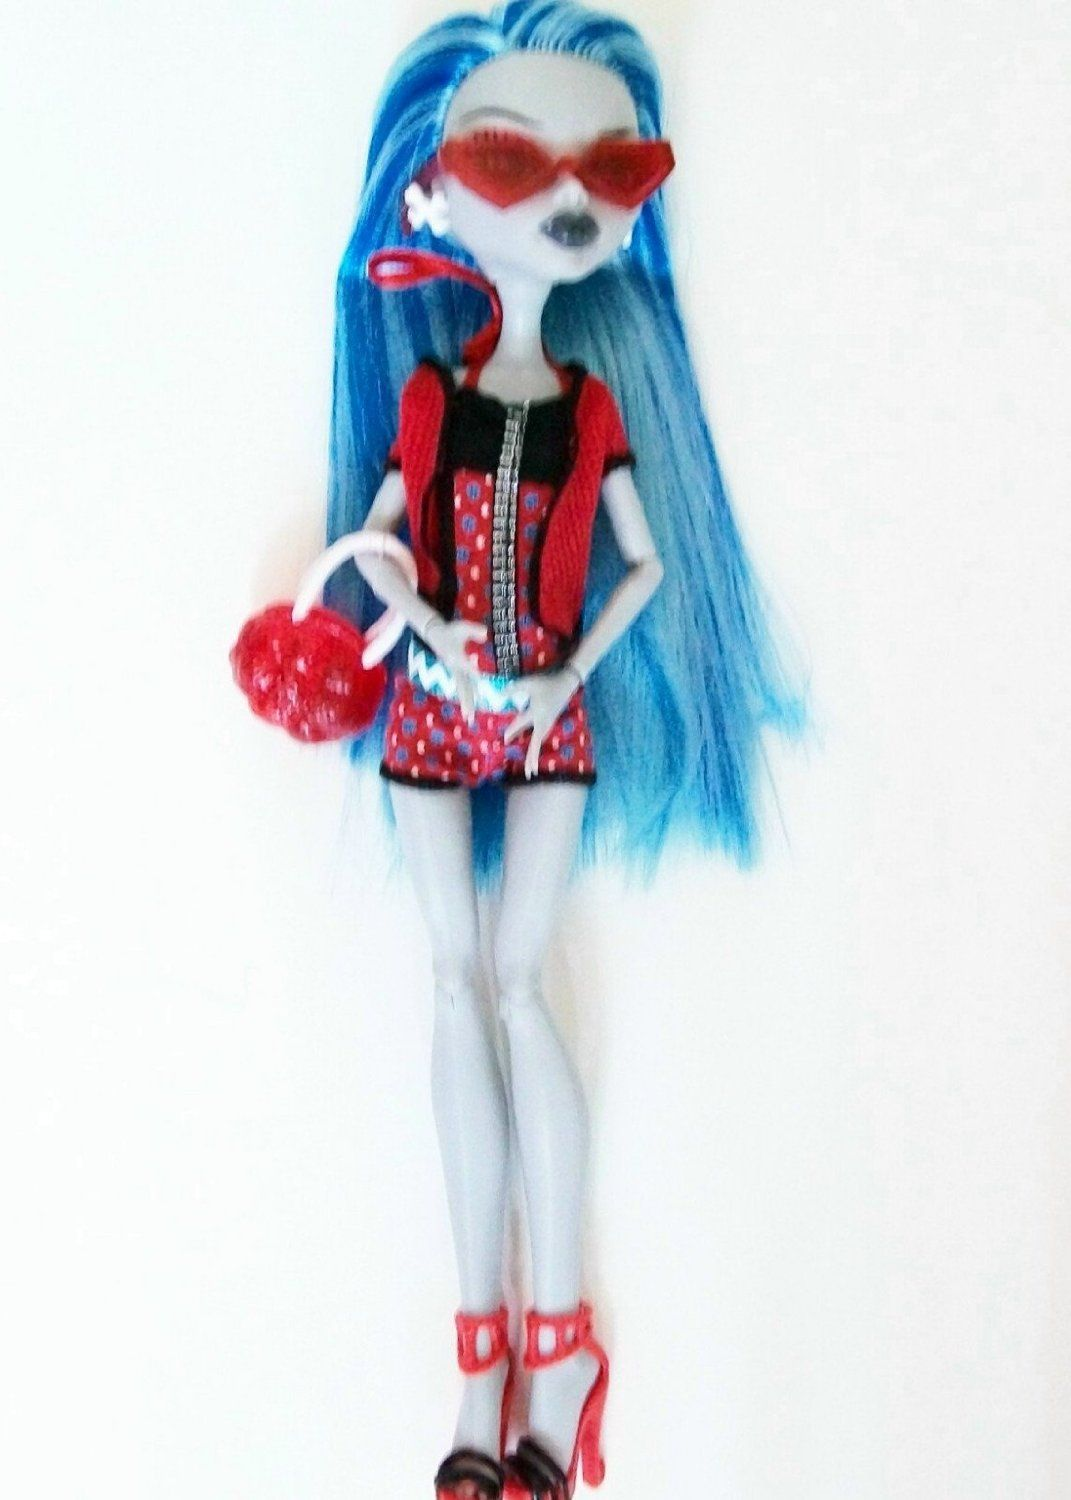 amazoncom monster high gloom beach ghoulia yelps doll toys games - Ghoulia Yelps